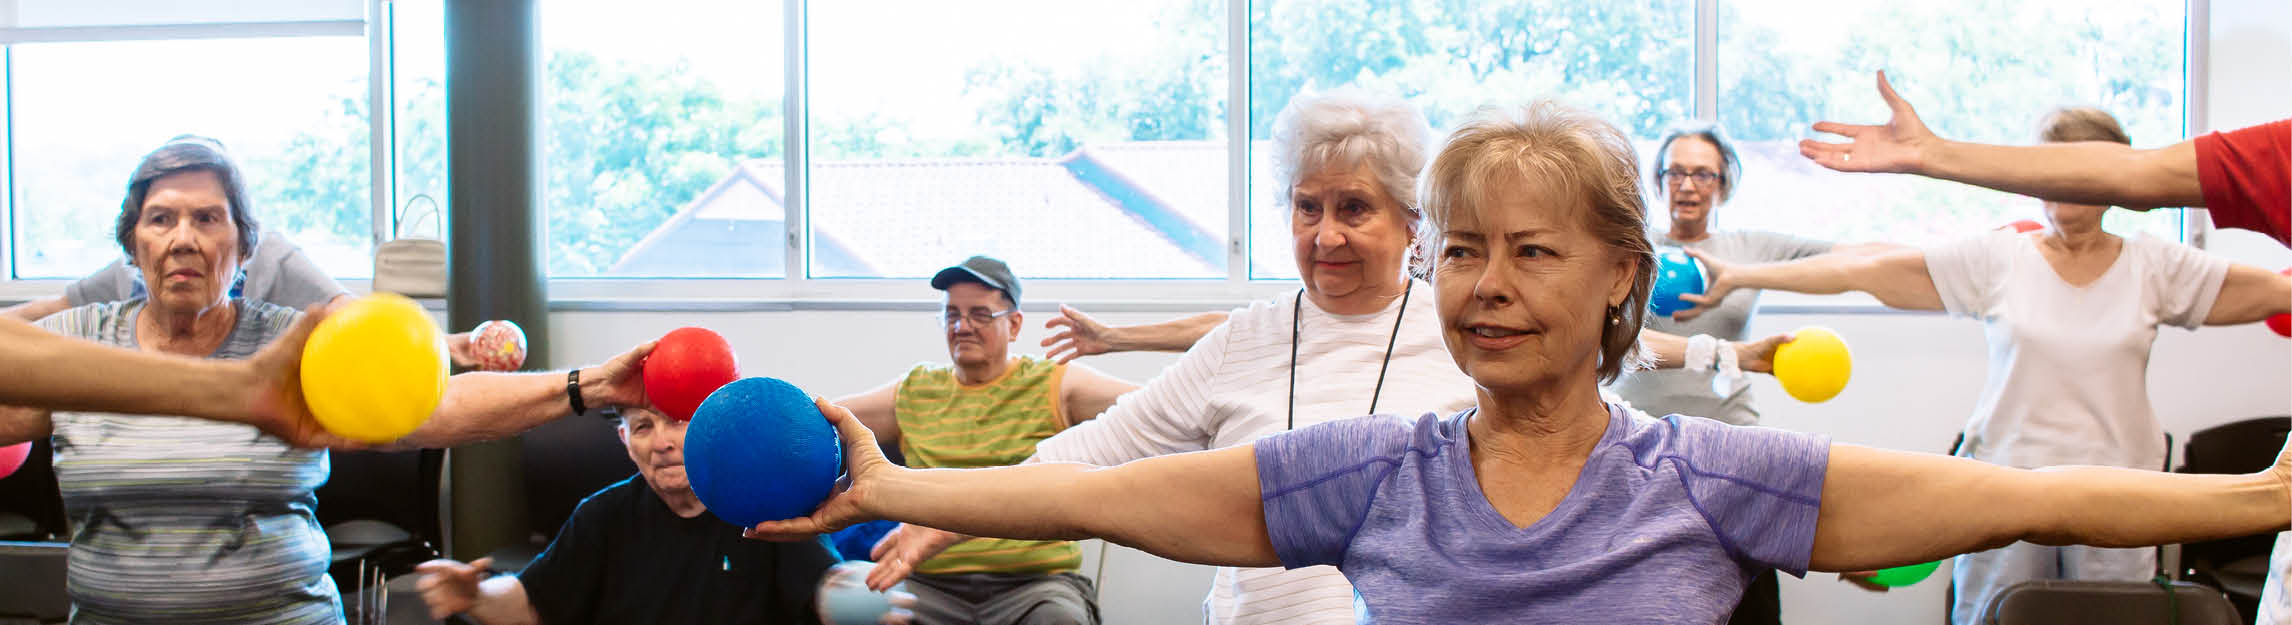 Active Older Adults working out in a group exercise class